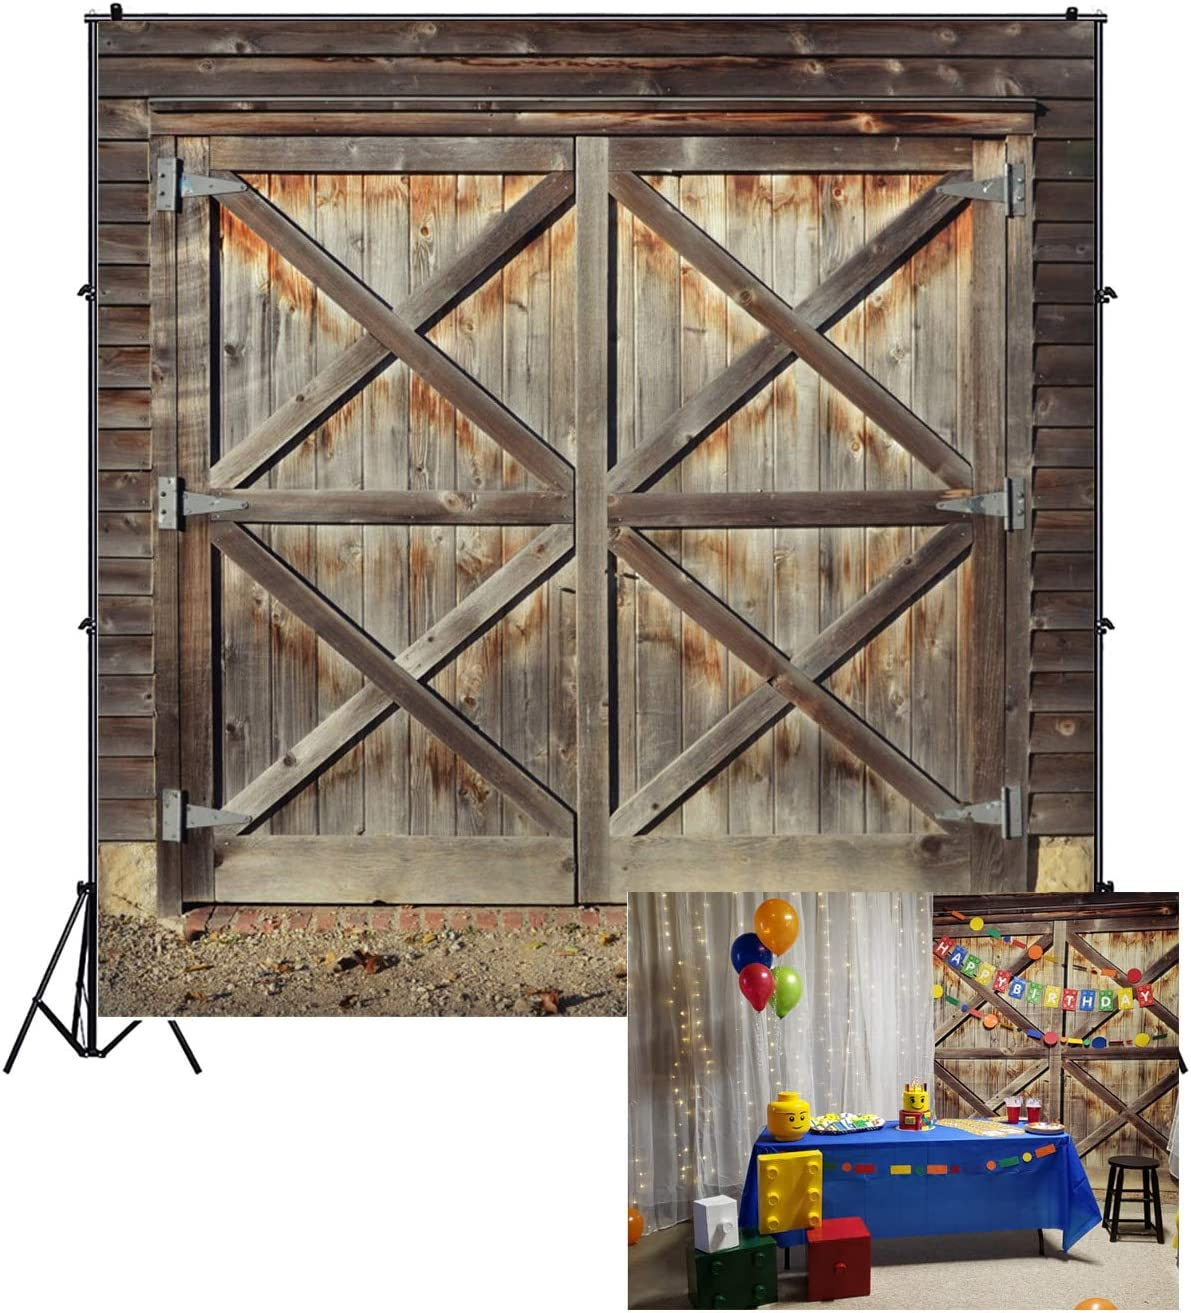 Leowefowa 8x10ft Vinyl Photography Backdrop Rustic Weathered Blue Wooden Door with Glass Window Background Event Party Decoration Portrait Photo Shoot Studio Photo Booth Props